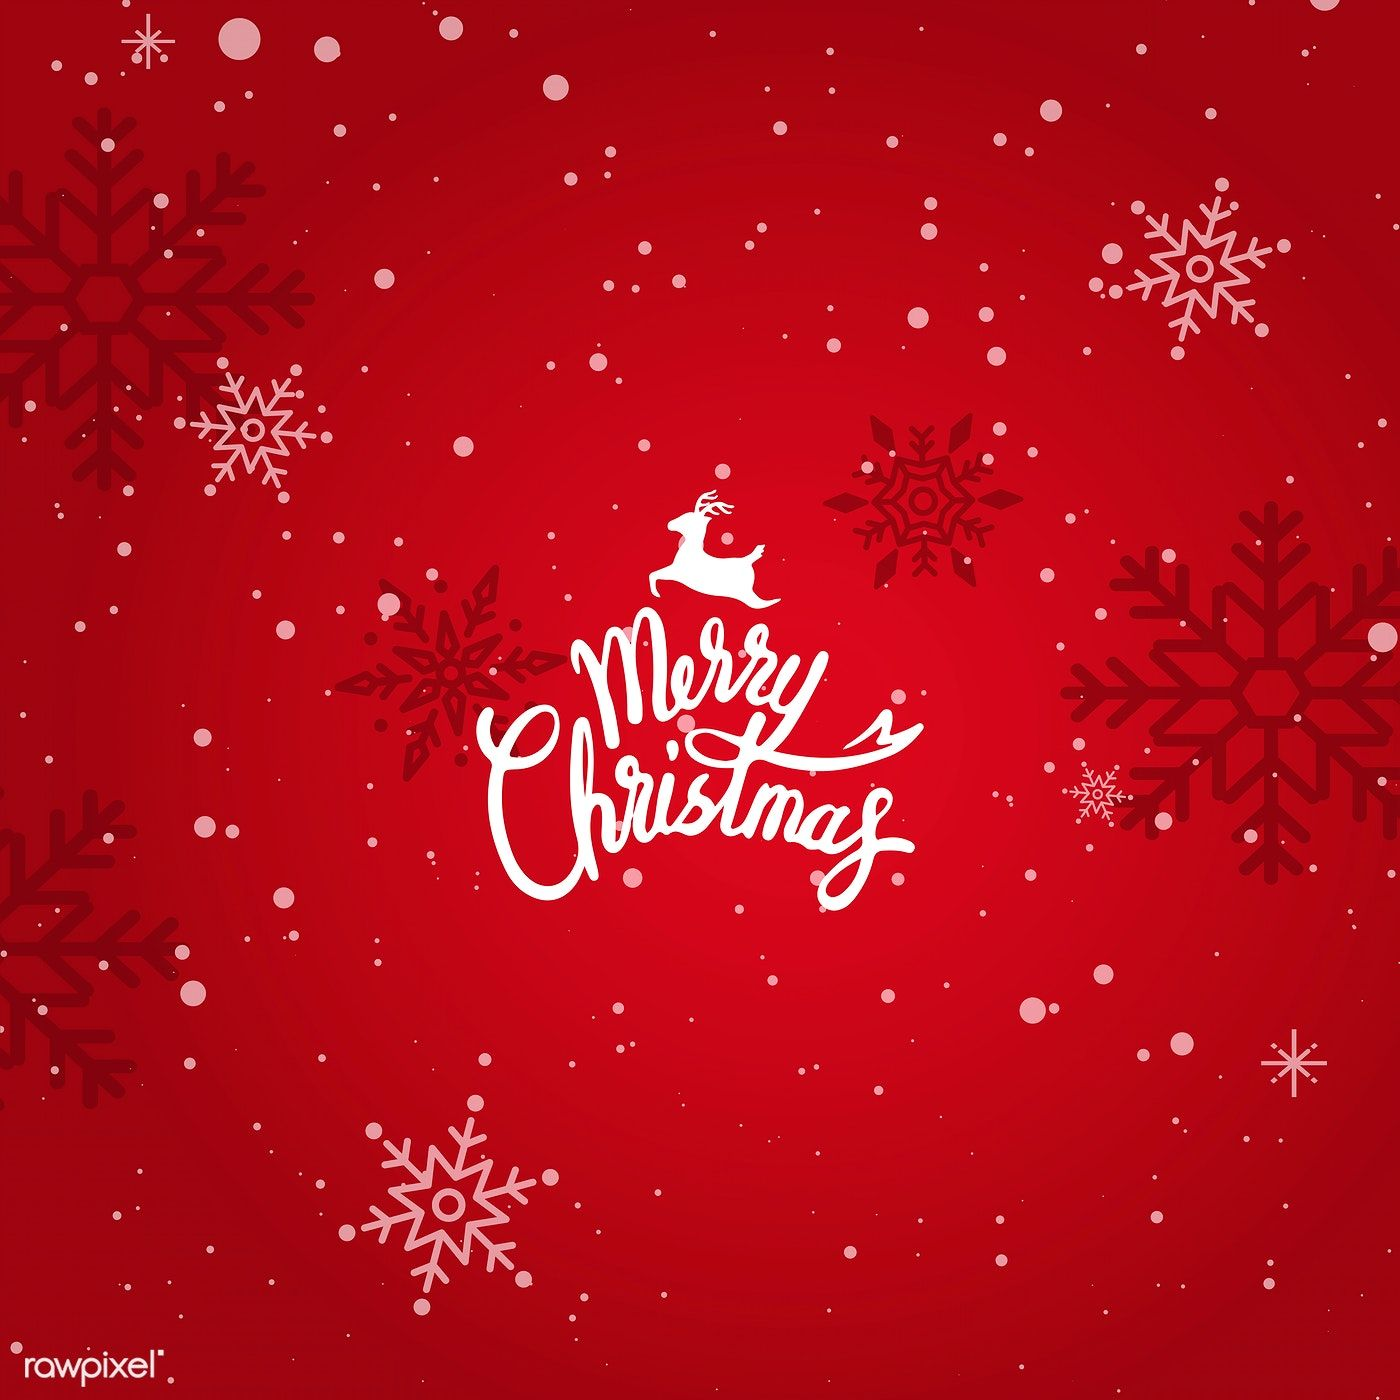 Merry Christmas Winter Holiday Background Vector Free Image By Rawpixel Com A Christmas Background Vector Merry Christmas Vector Merry Christmas Background